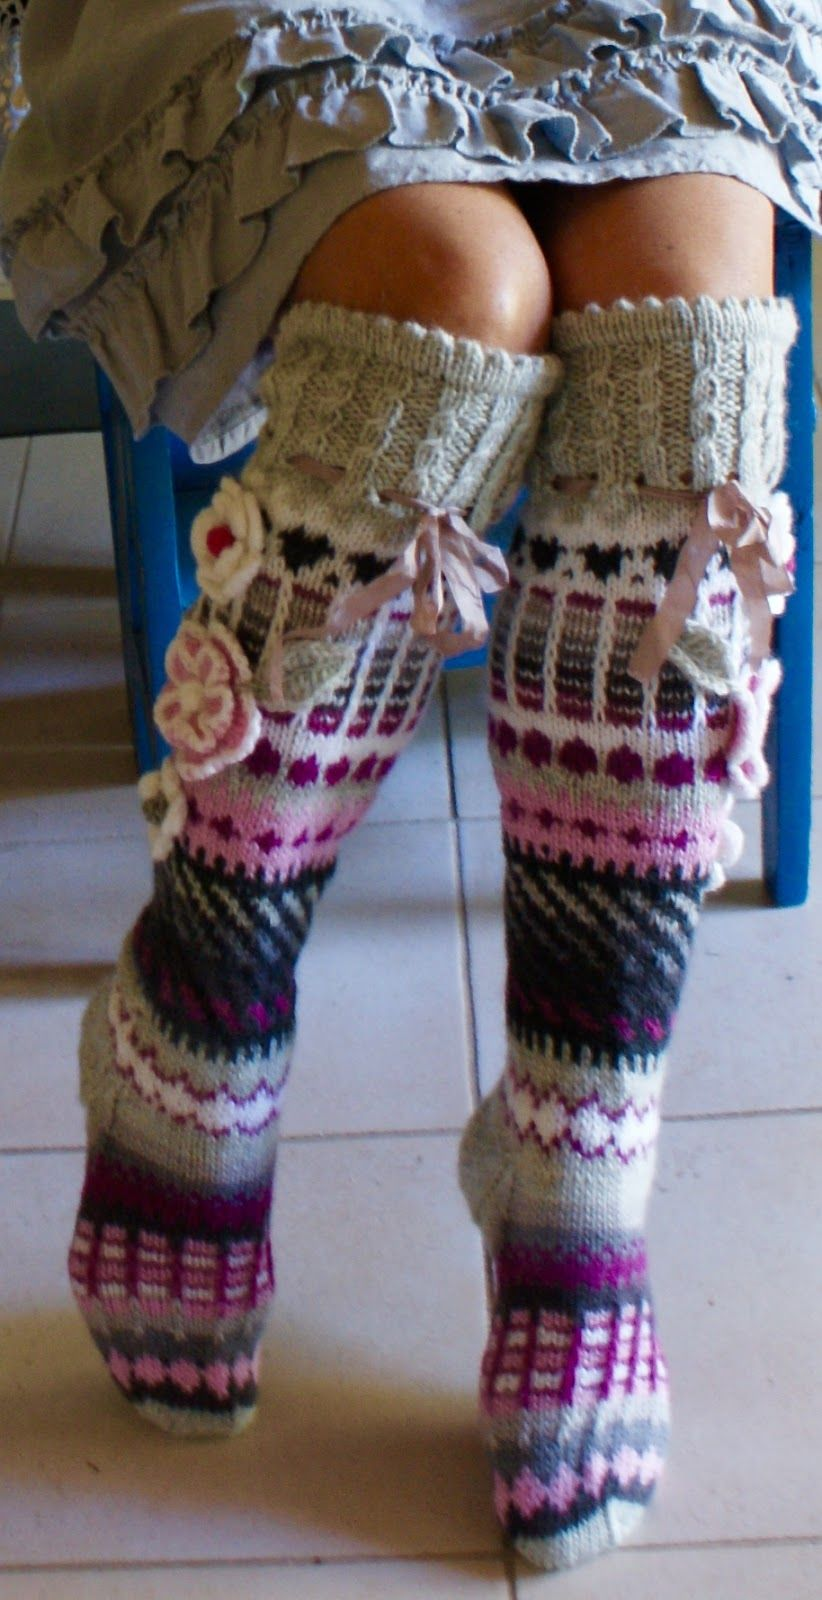 Ankortit she makes the most beautiful socks